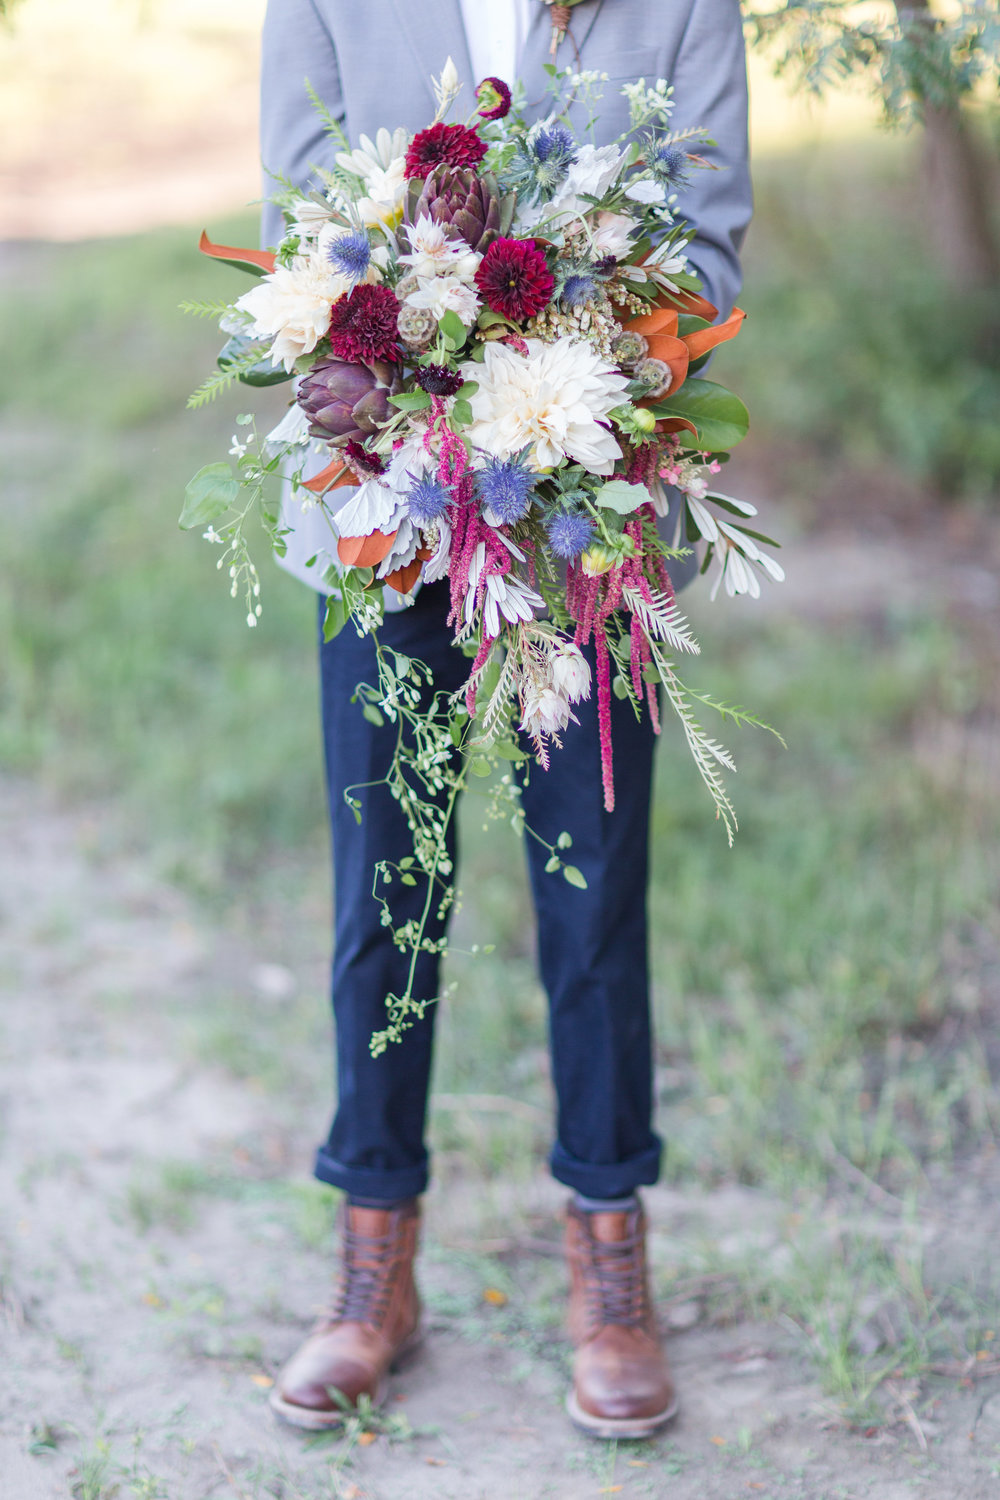 country-lane-lodge-adel-iowa-wedding-venue-iowa-wedding-planned-by-mostly-becky-weddings-boho-wedding-orange-purple-flowers-blue-suite-brown-boots-outdoor-ceremony-groom-bouquet